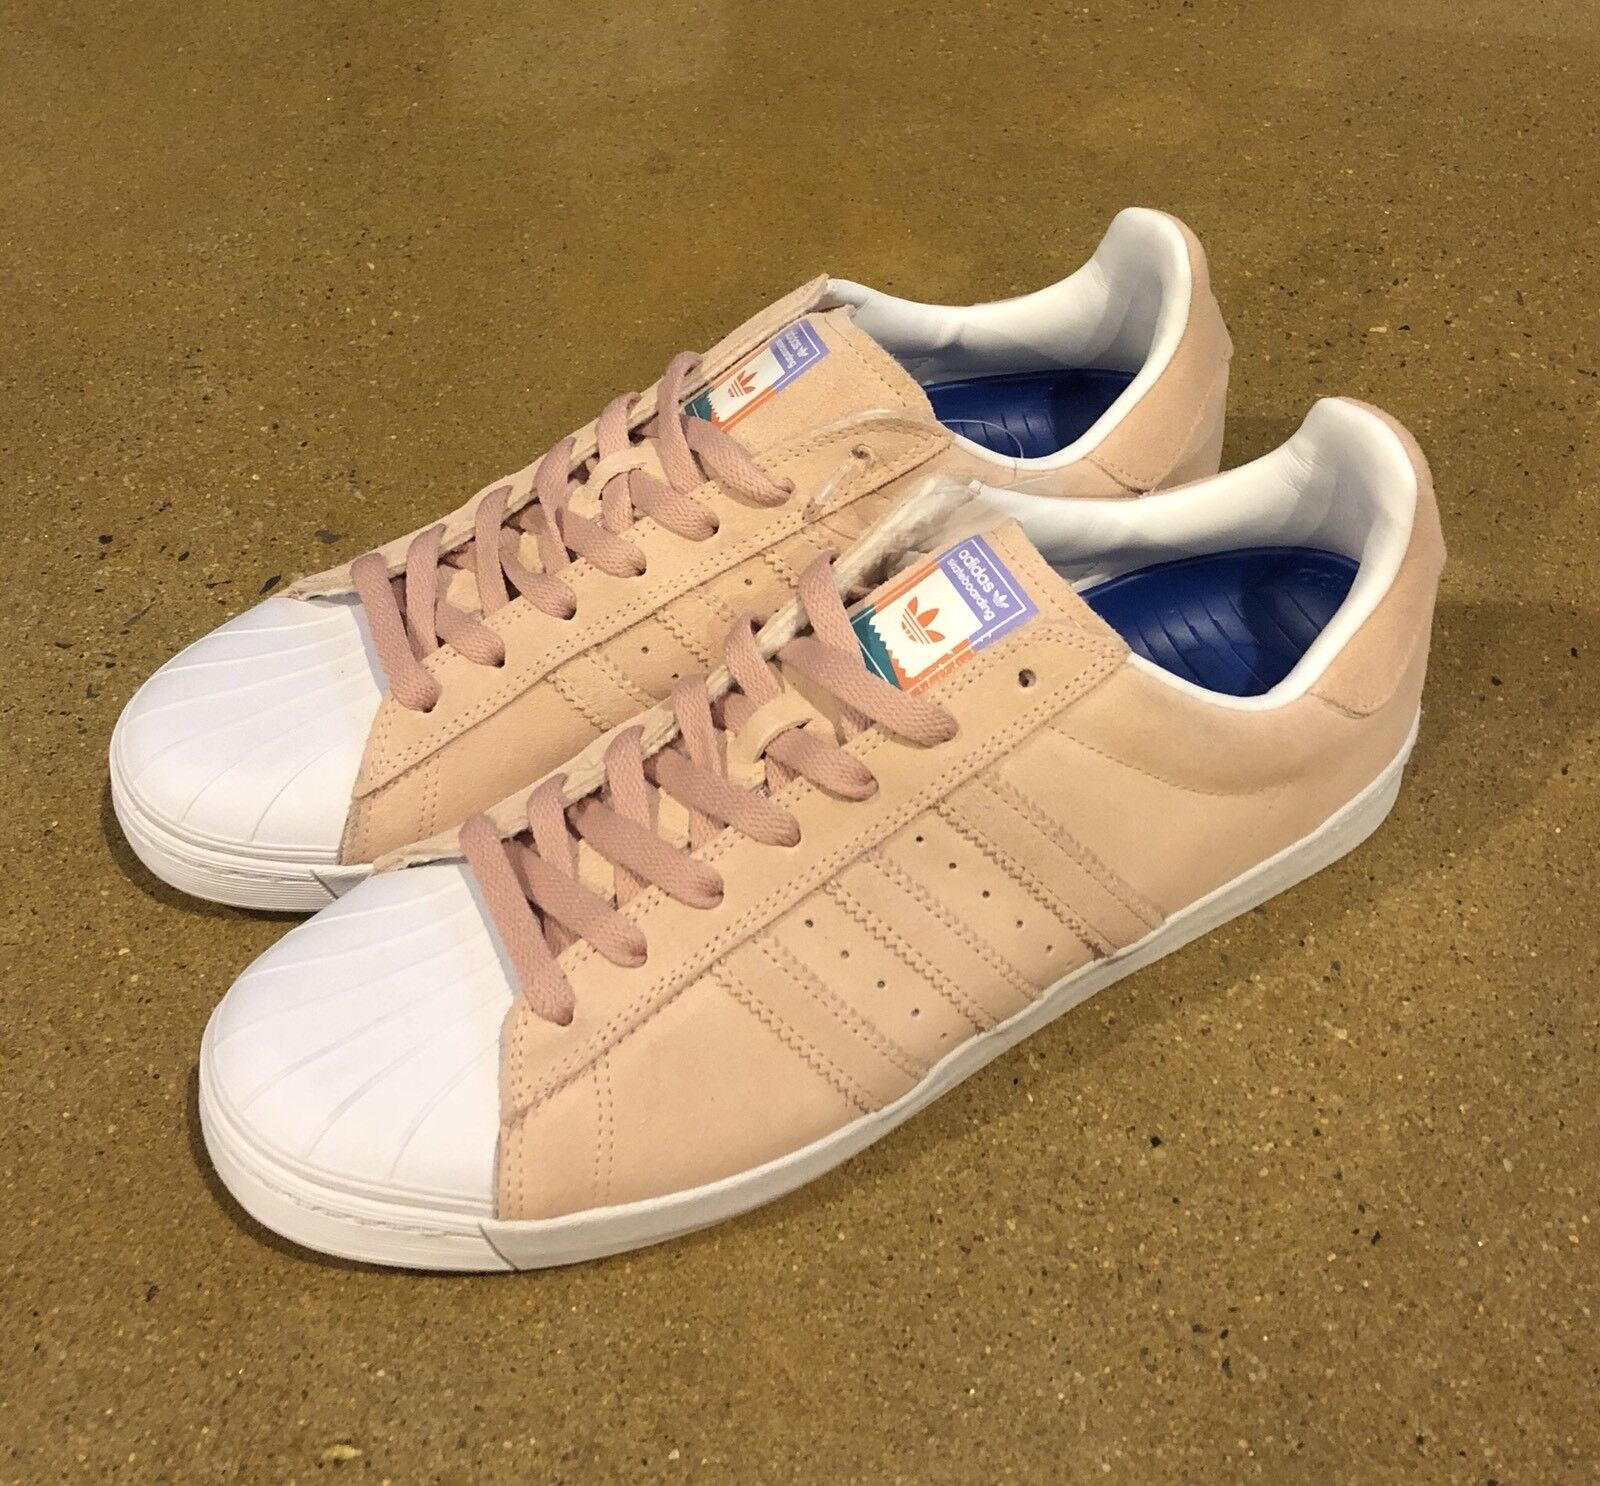 Adidas Superstar Vulc ADV Pastel Pink Size Sneakers 12 US Skate Shoes Sneakers Size 8152b9